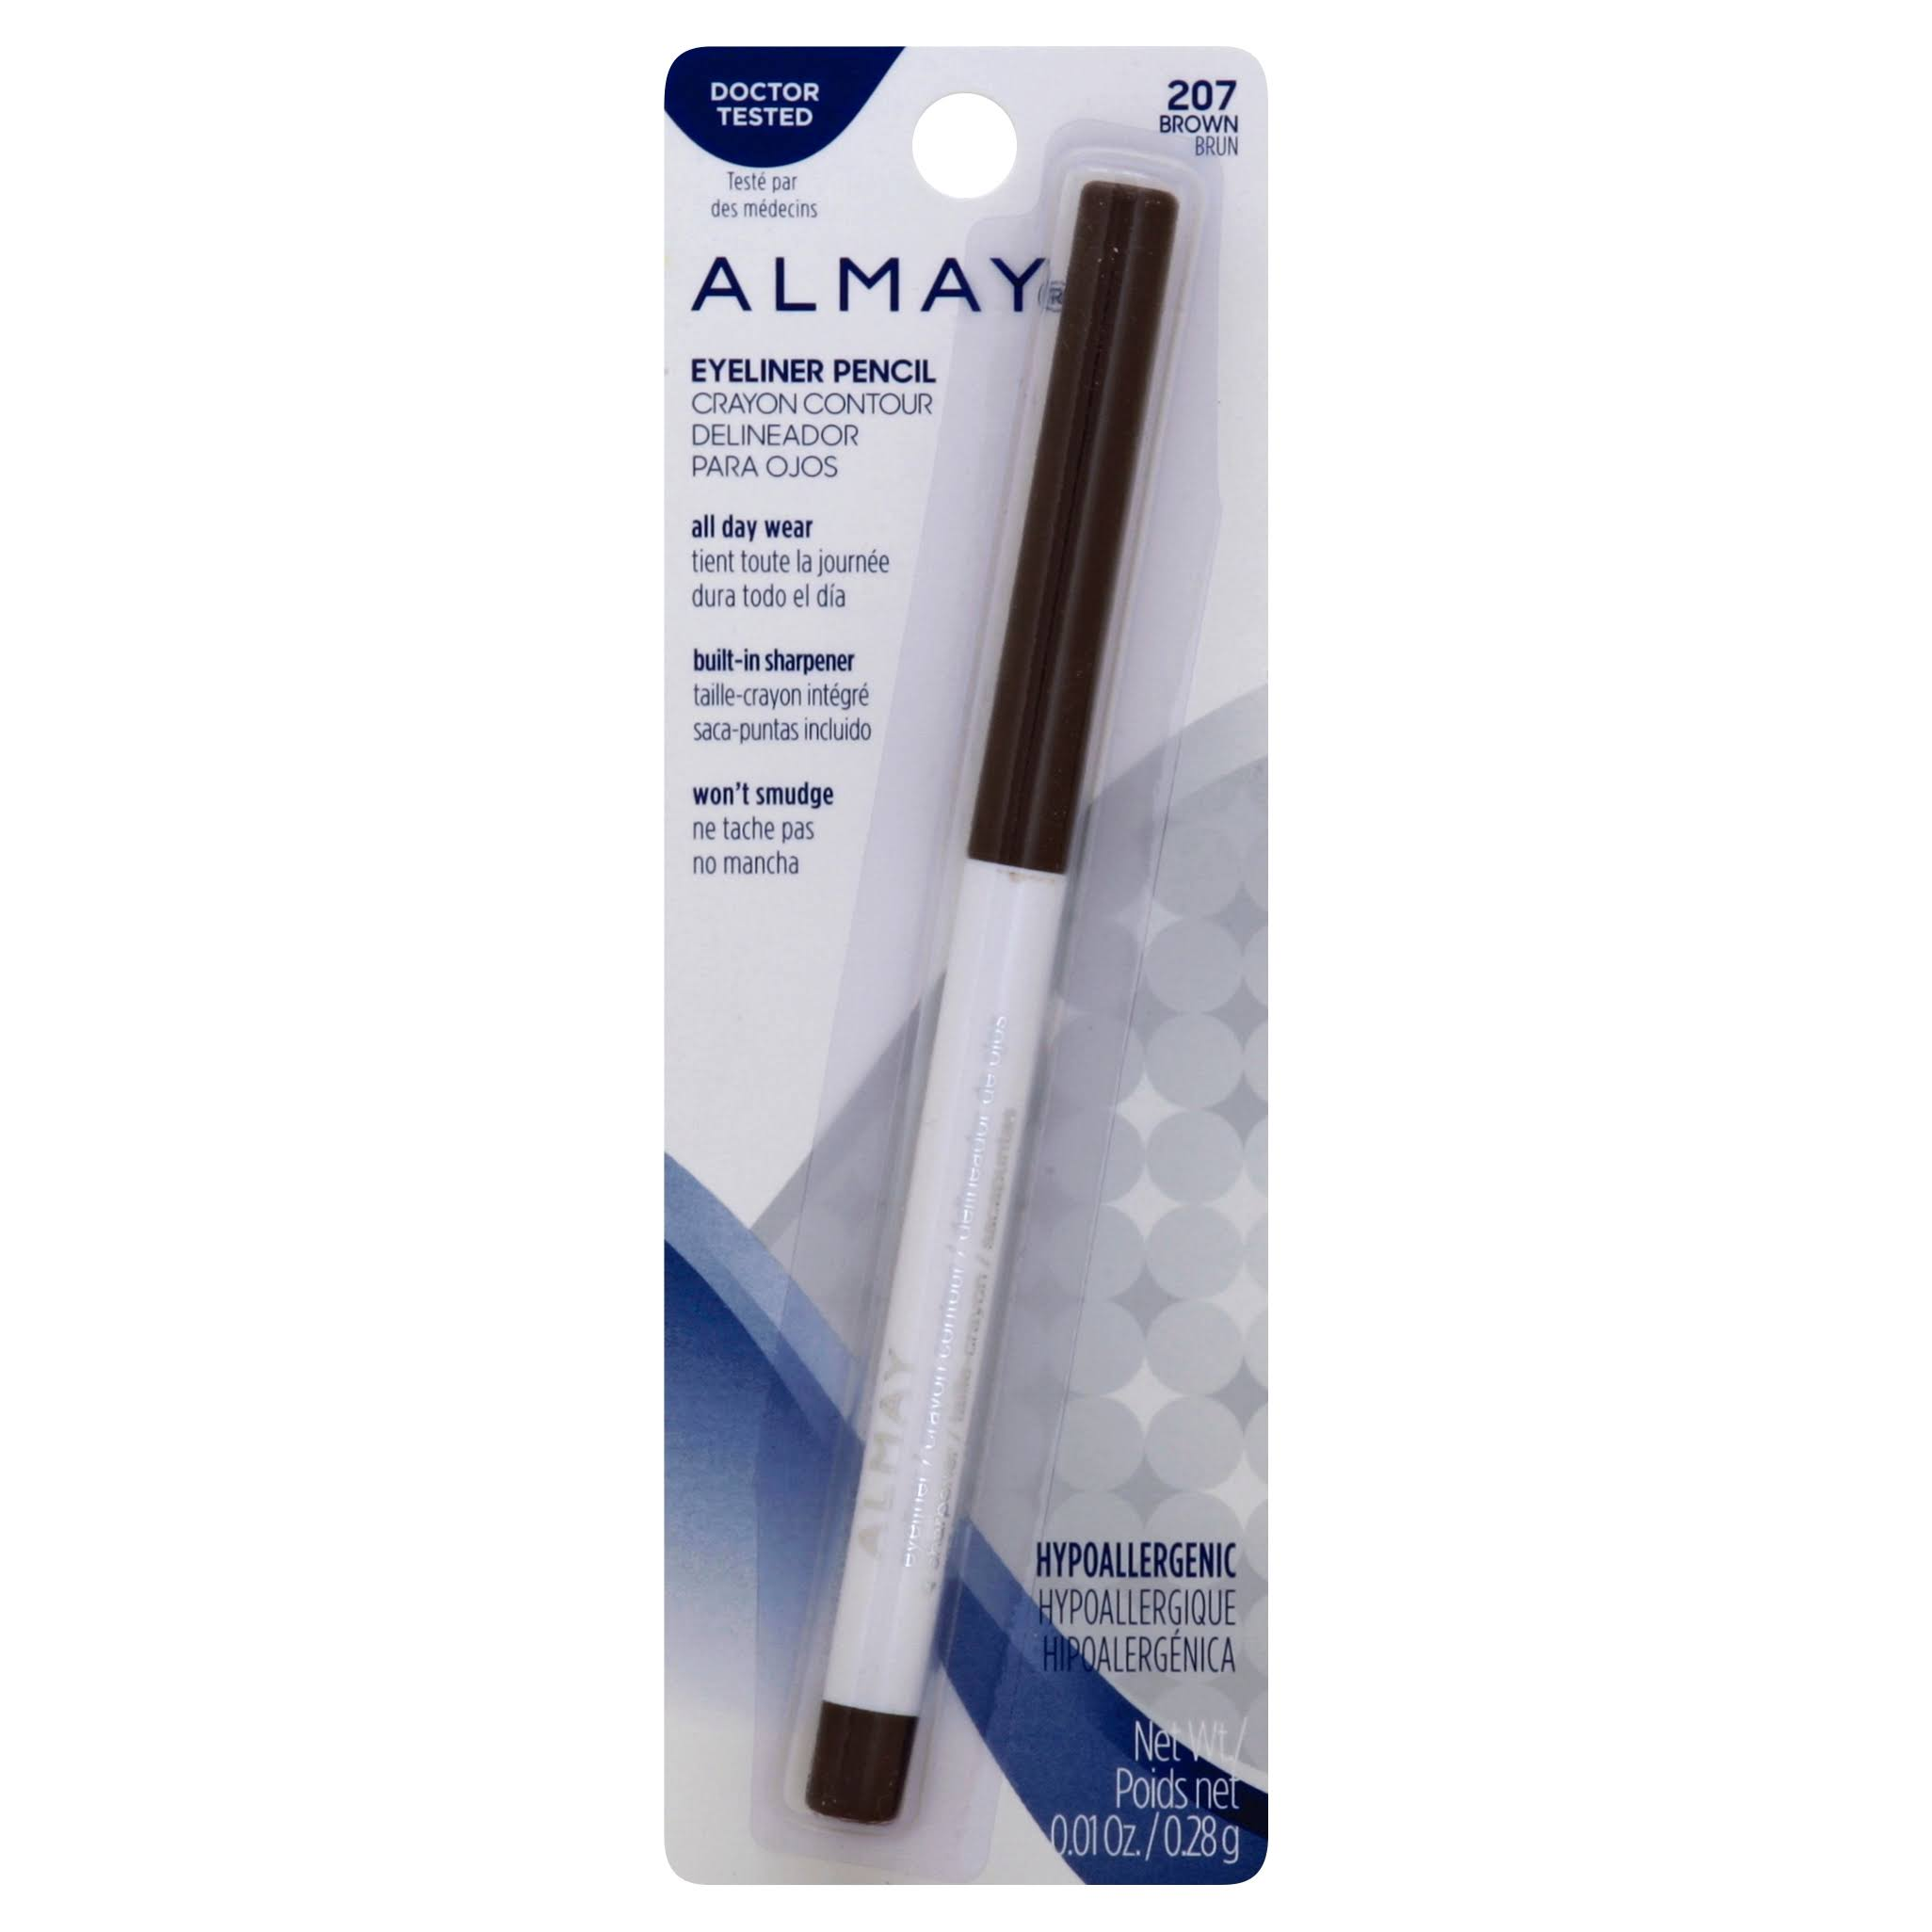 almay Eyeliner Pencil - 207 Brown